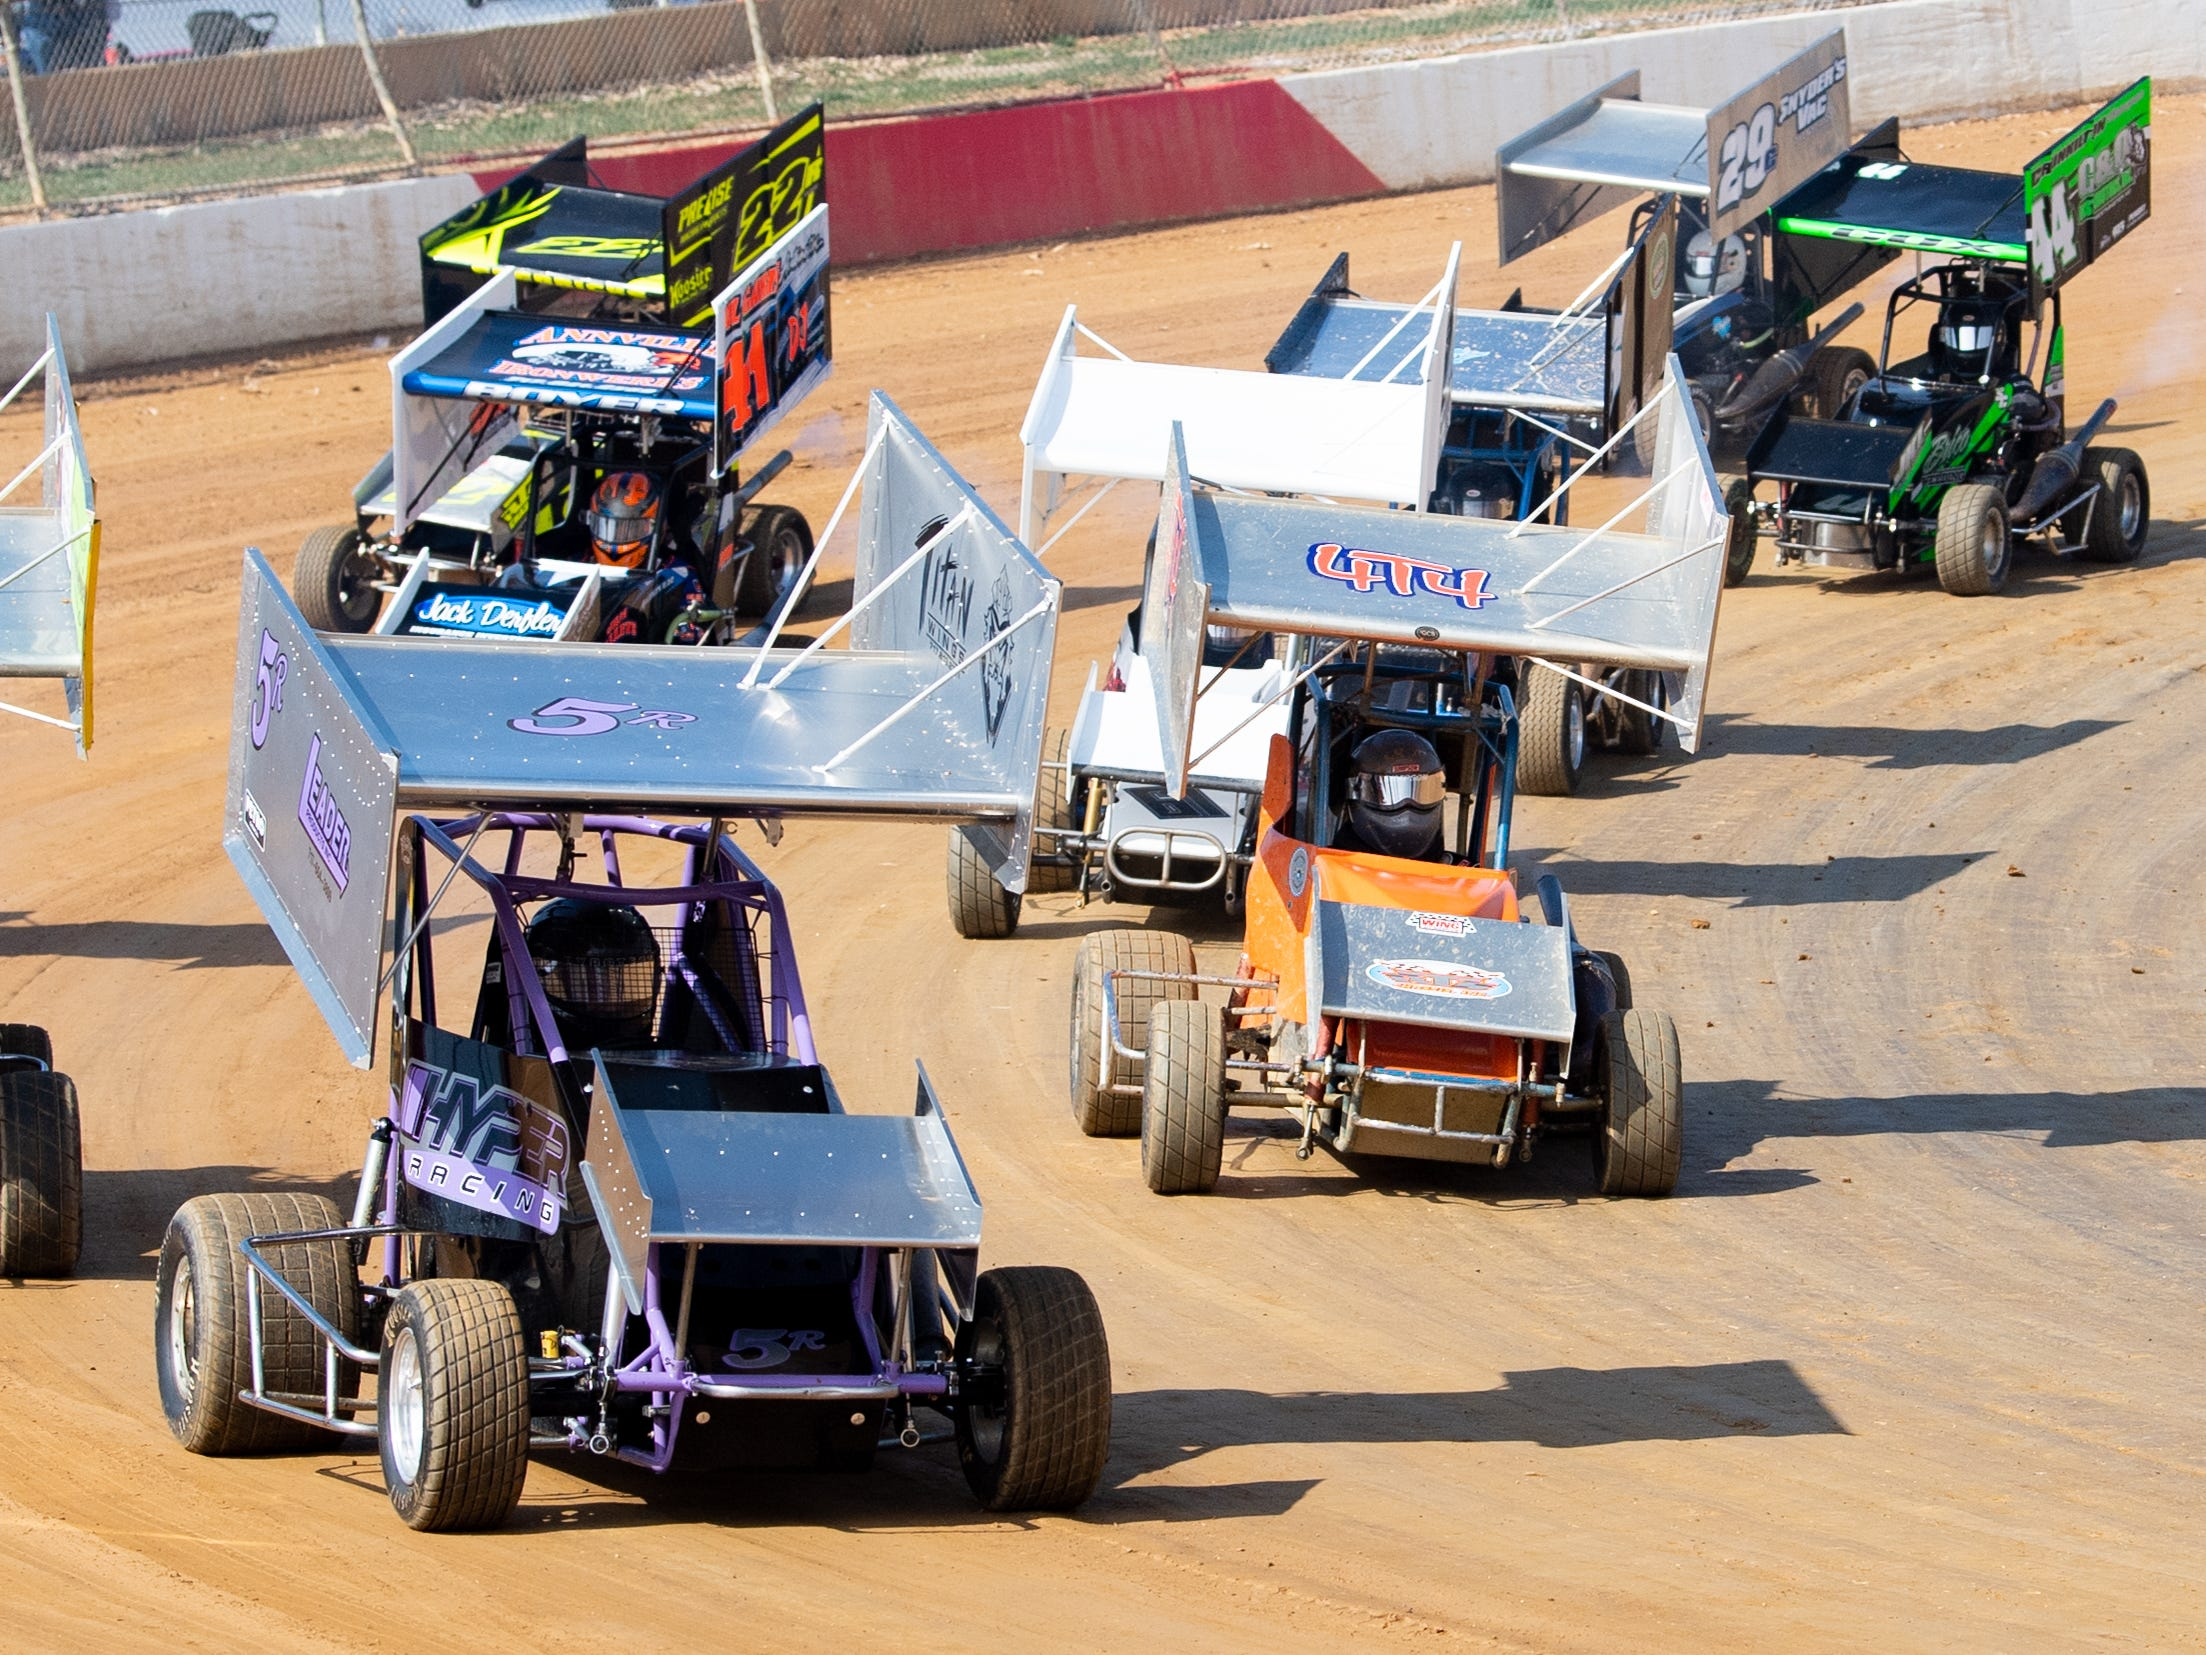 Racers in the 270 Micro Sprints look to pull ahead during the Trail-Way Speedway season opener, April 6, 2019.